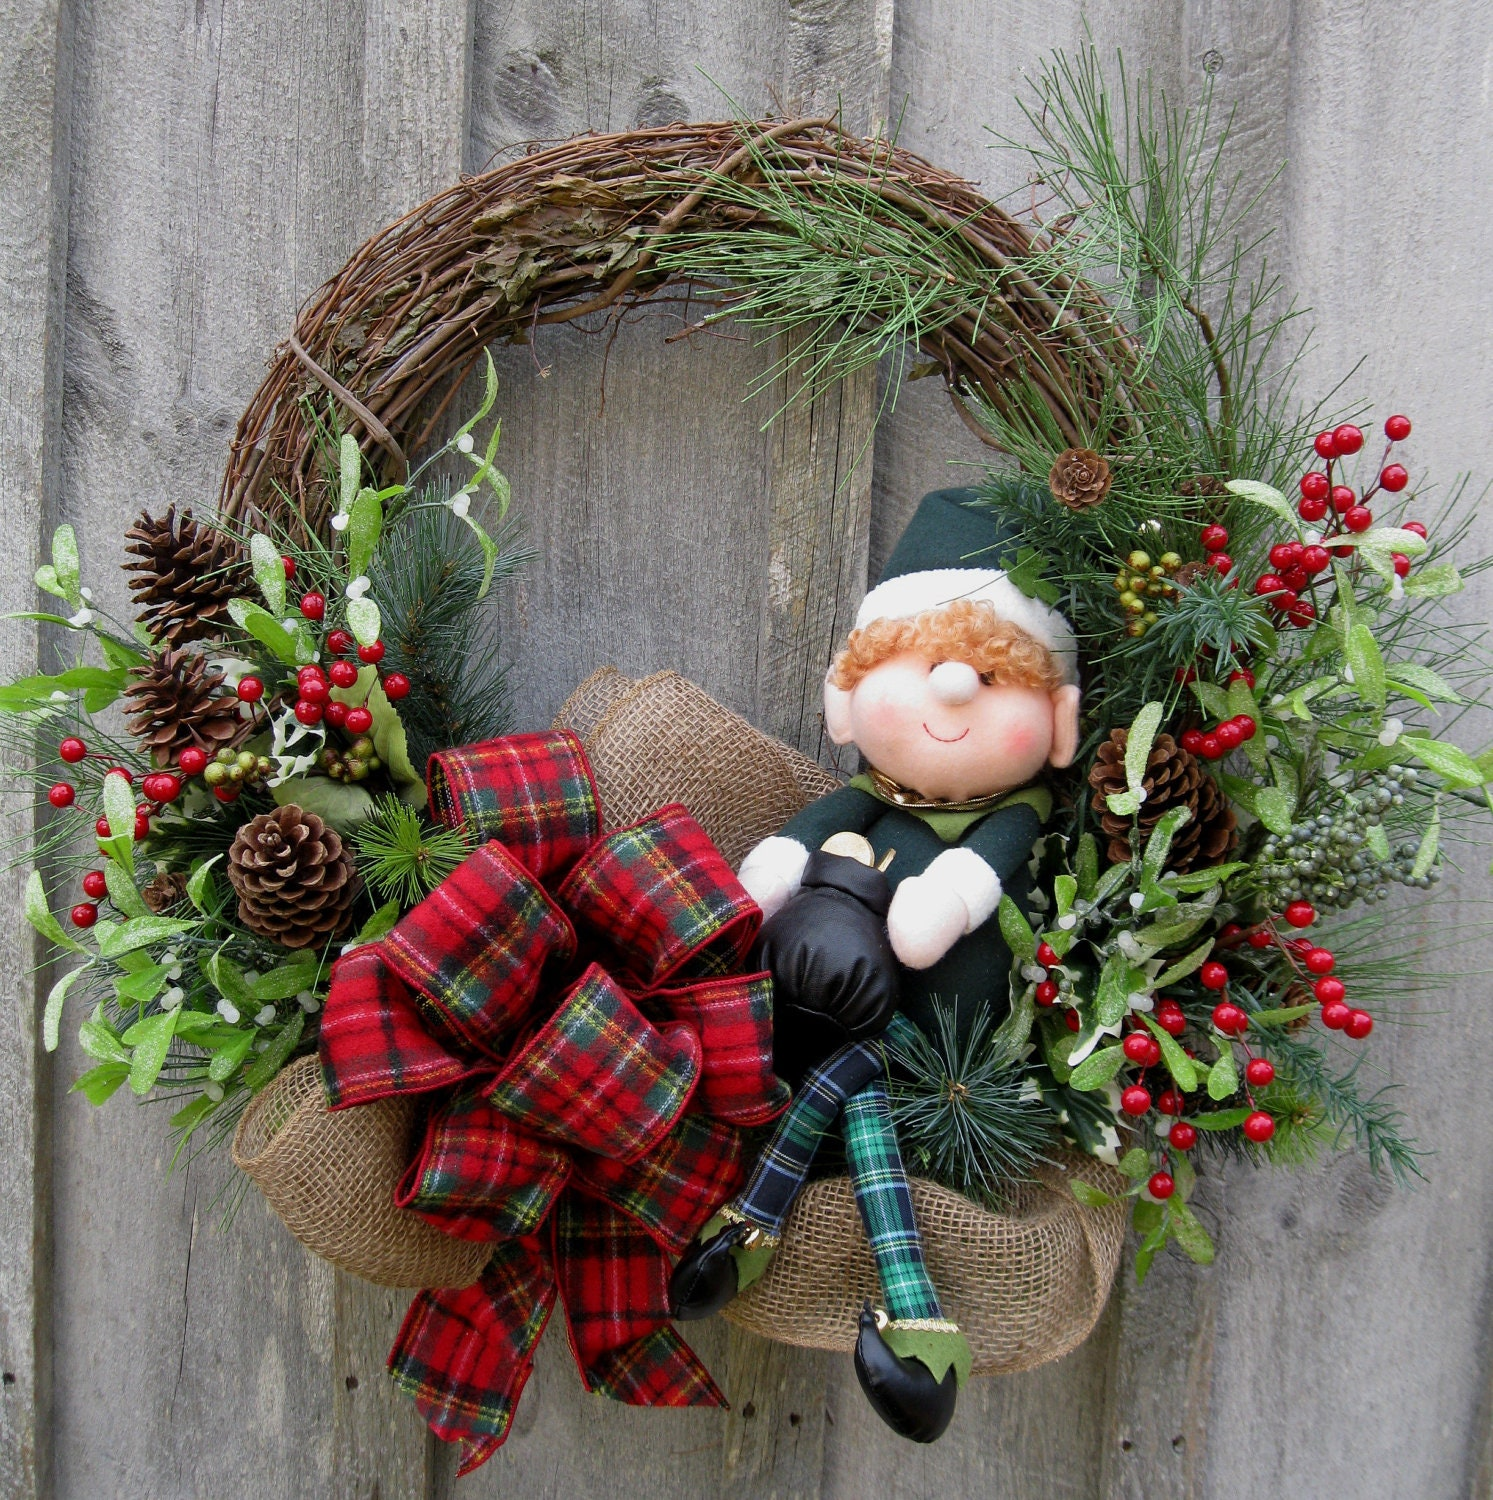 Making Natural Christmas Decorations: Christmas Wreath Holiday Wreath Woodland Décor Irish